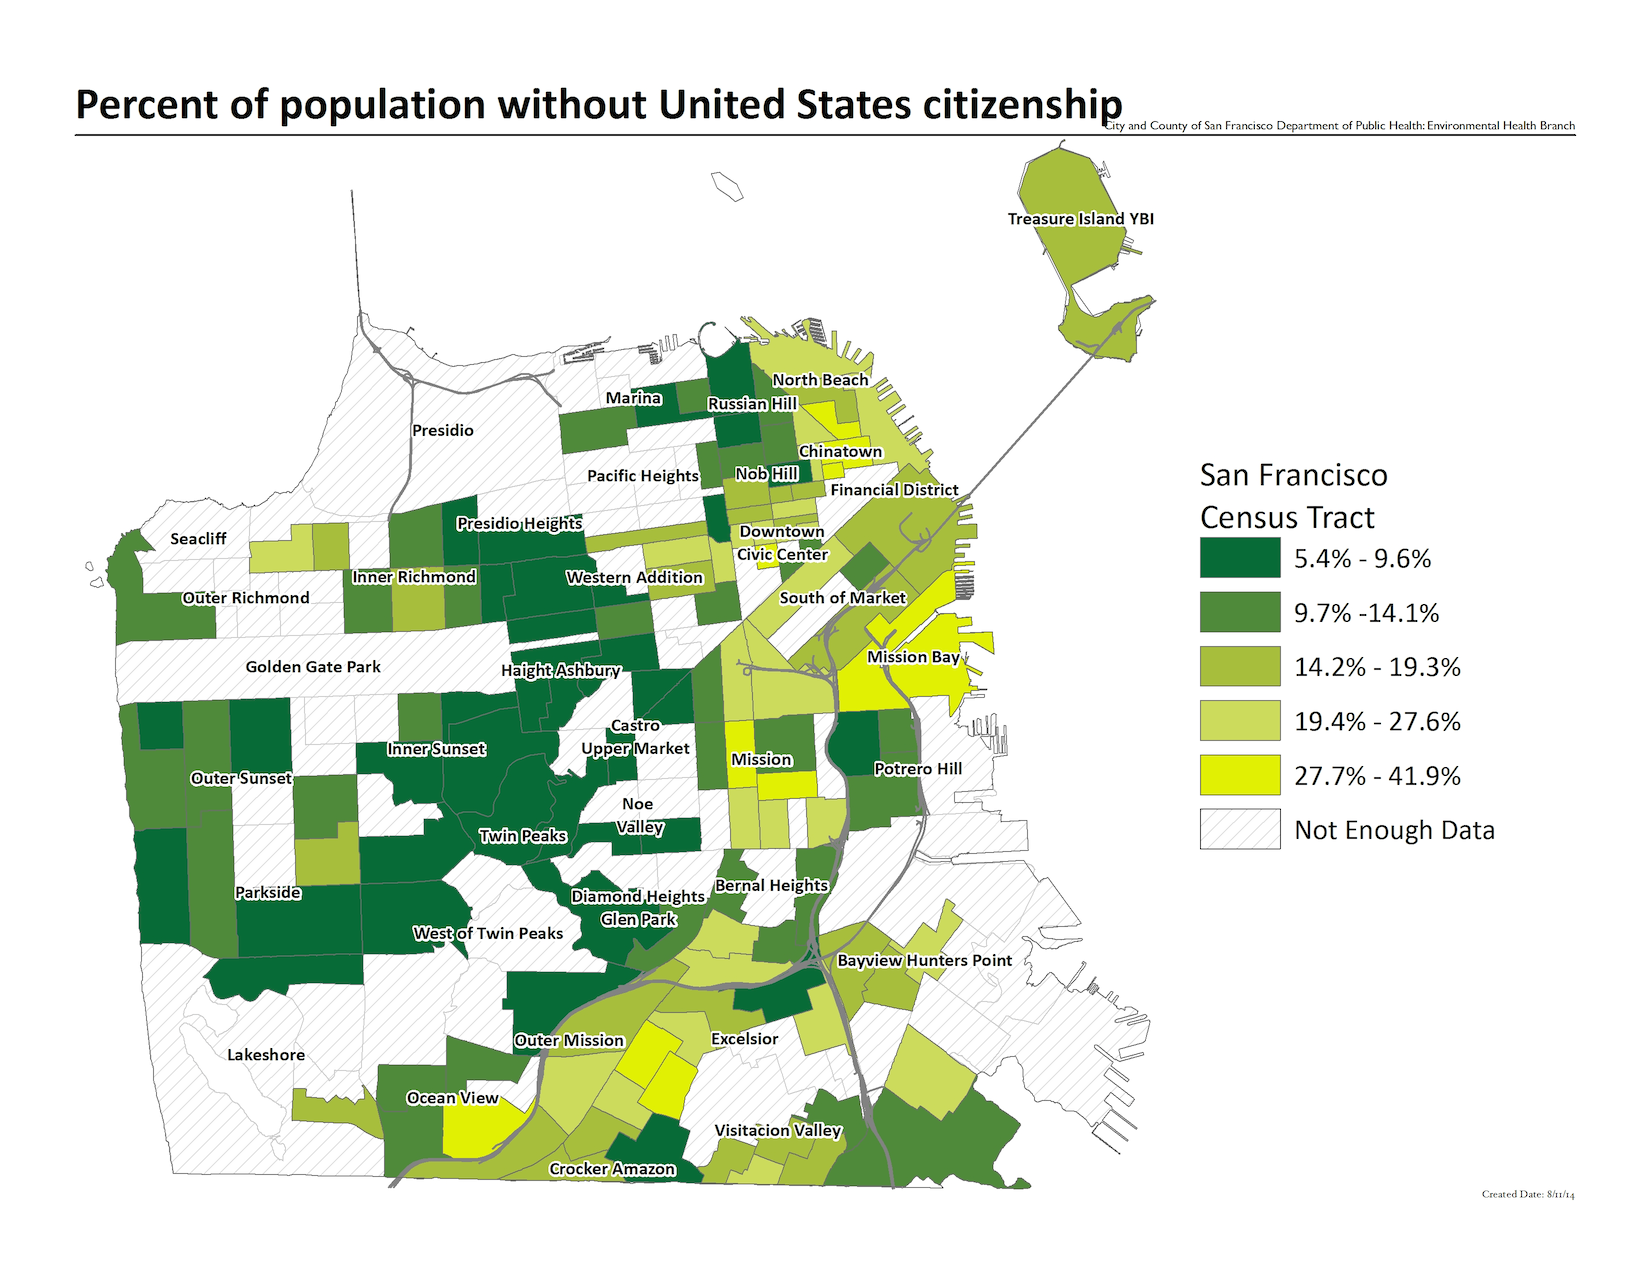 Map of the percent of the population without US citizenship, by census tract. The highest concentrations include the Chinatown and Mission Bay neighborhoods.